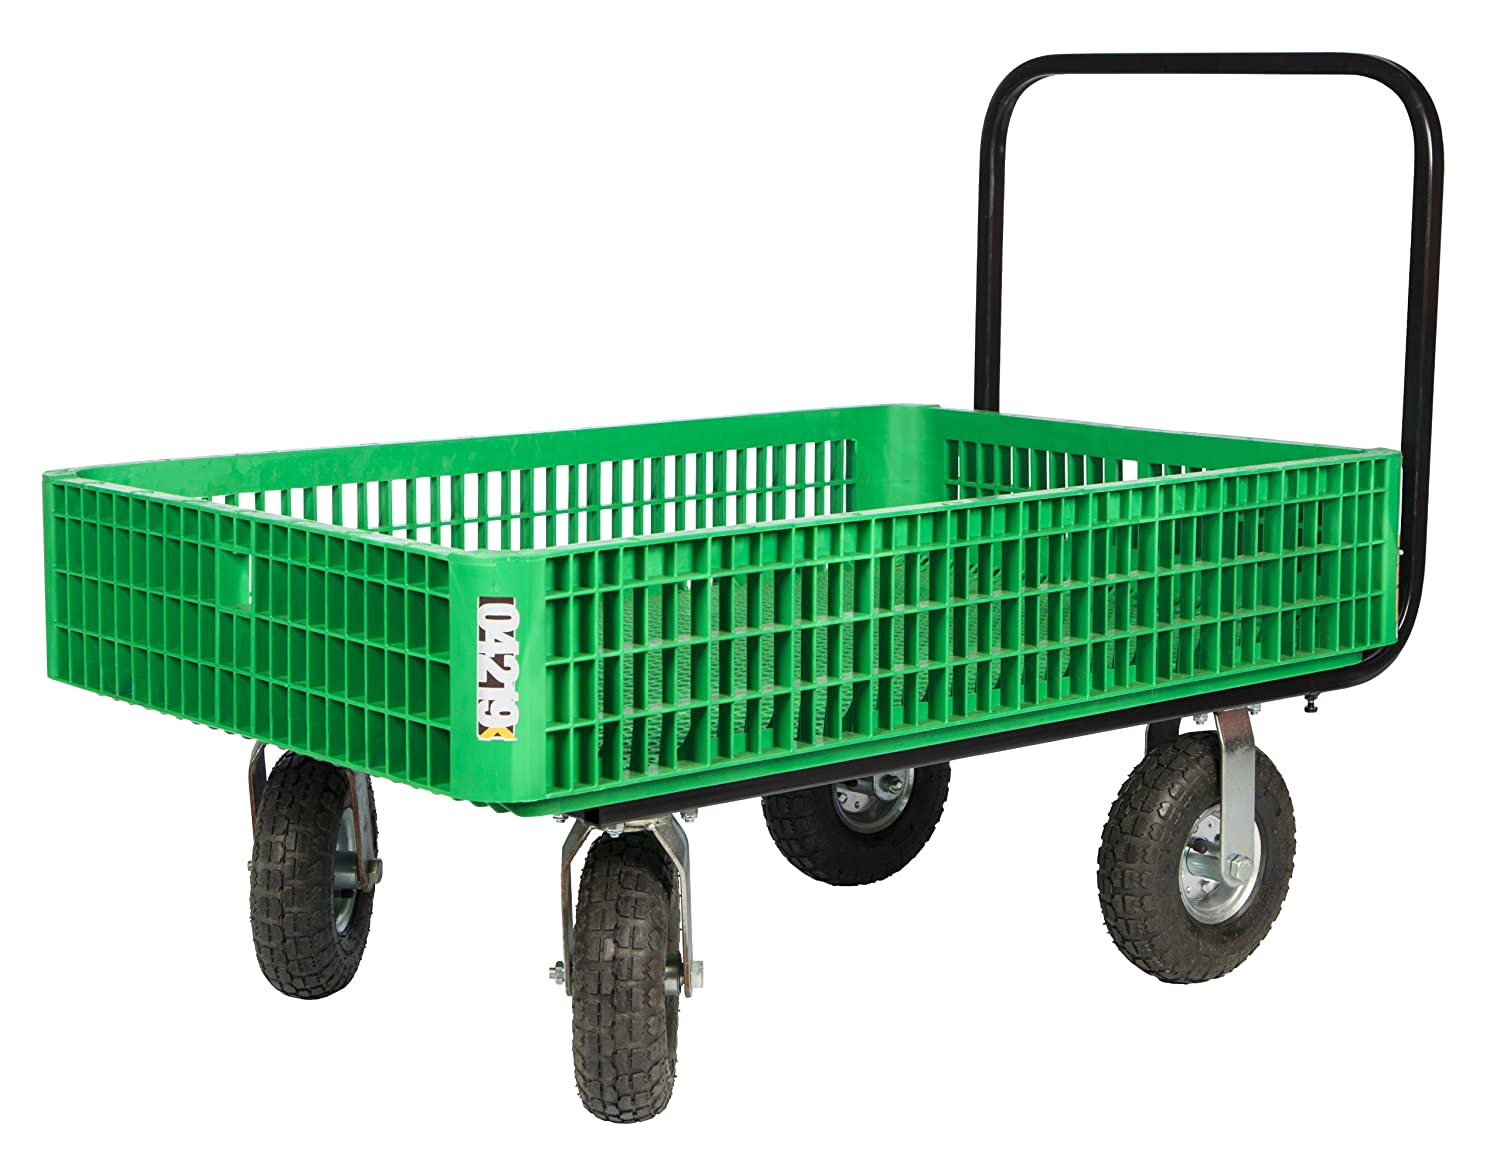 Farm Tuff 30-Inch by 46-Inch Crate Wagon with 4-Inch by 10-Inch Tires, Green or Grey Millside Industries Inc 04219